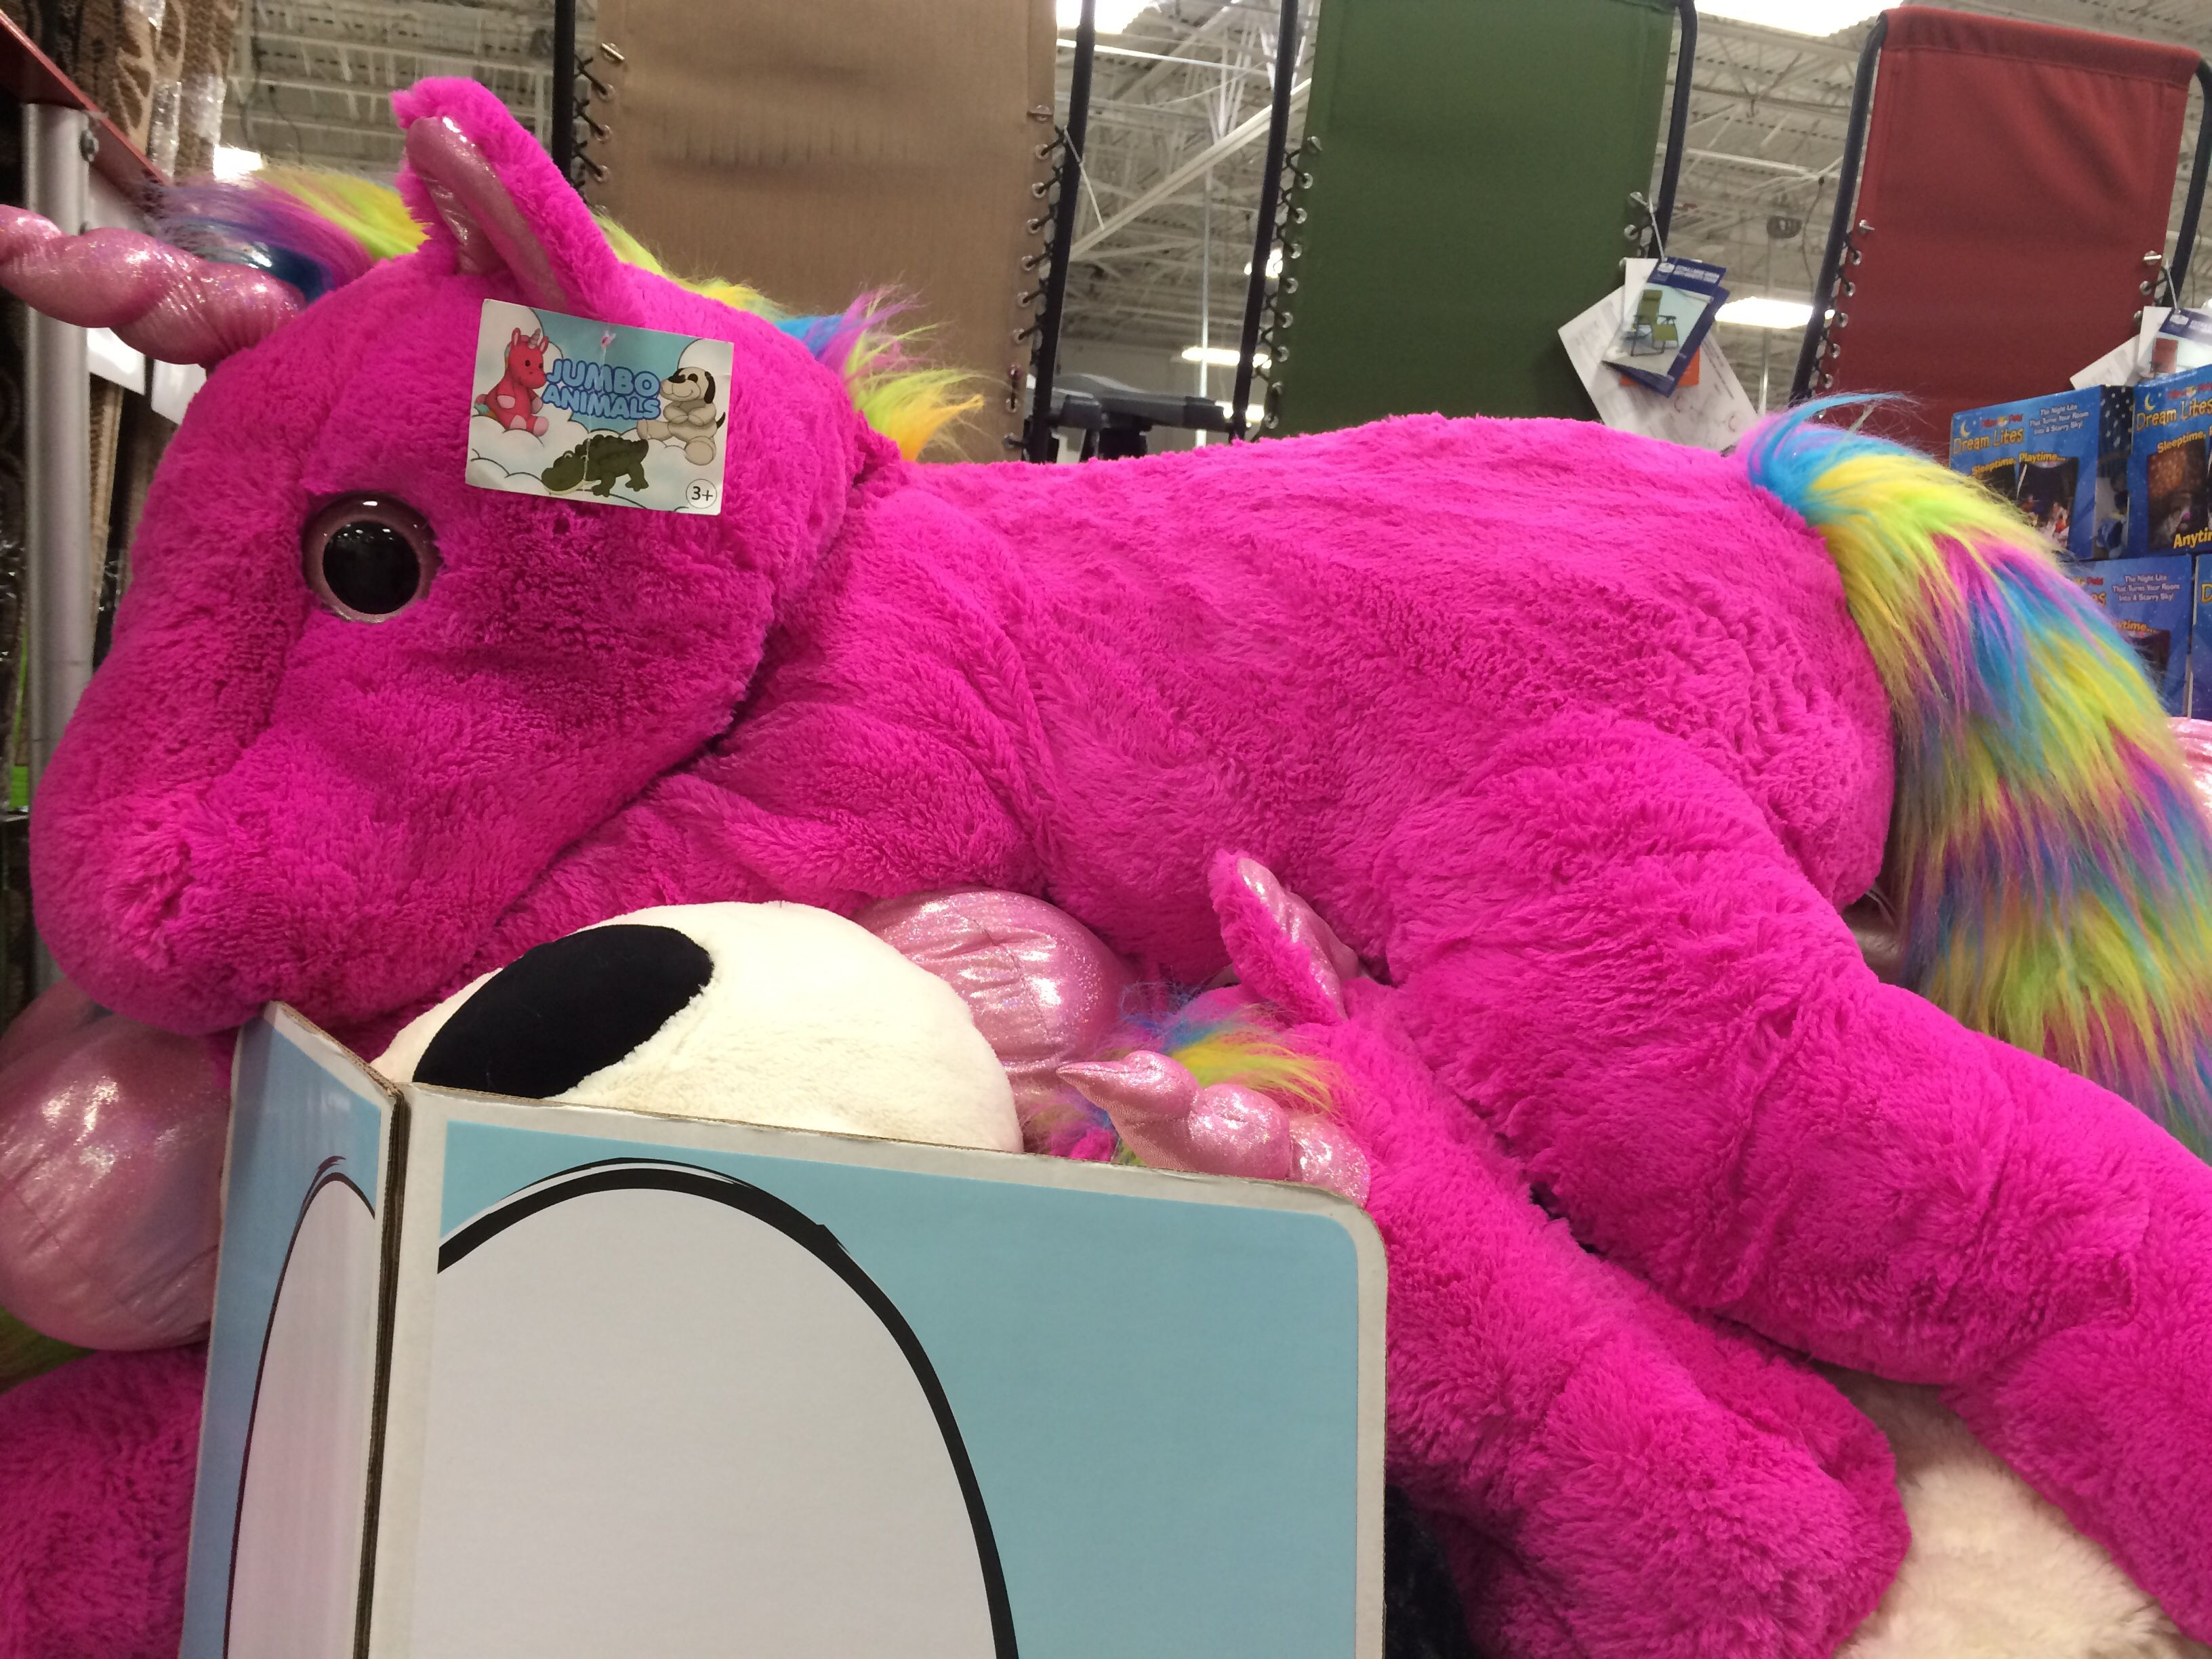 Large Jumbo Pink Unicorn Plush From Sams Club 30 Rhenna Would Have A Heartattack Her Large Unicorn Plush She Uses As A Pil Unicorn Plush Pink Unicorn Plush [ 2448 x 3264 Pixel ]